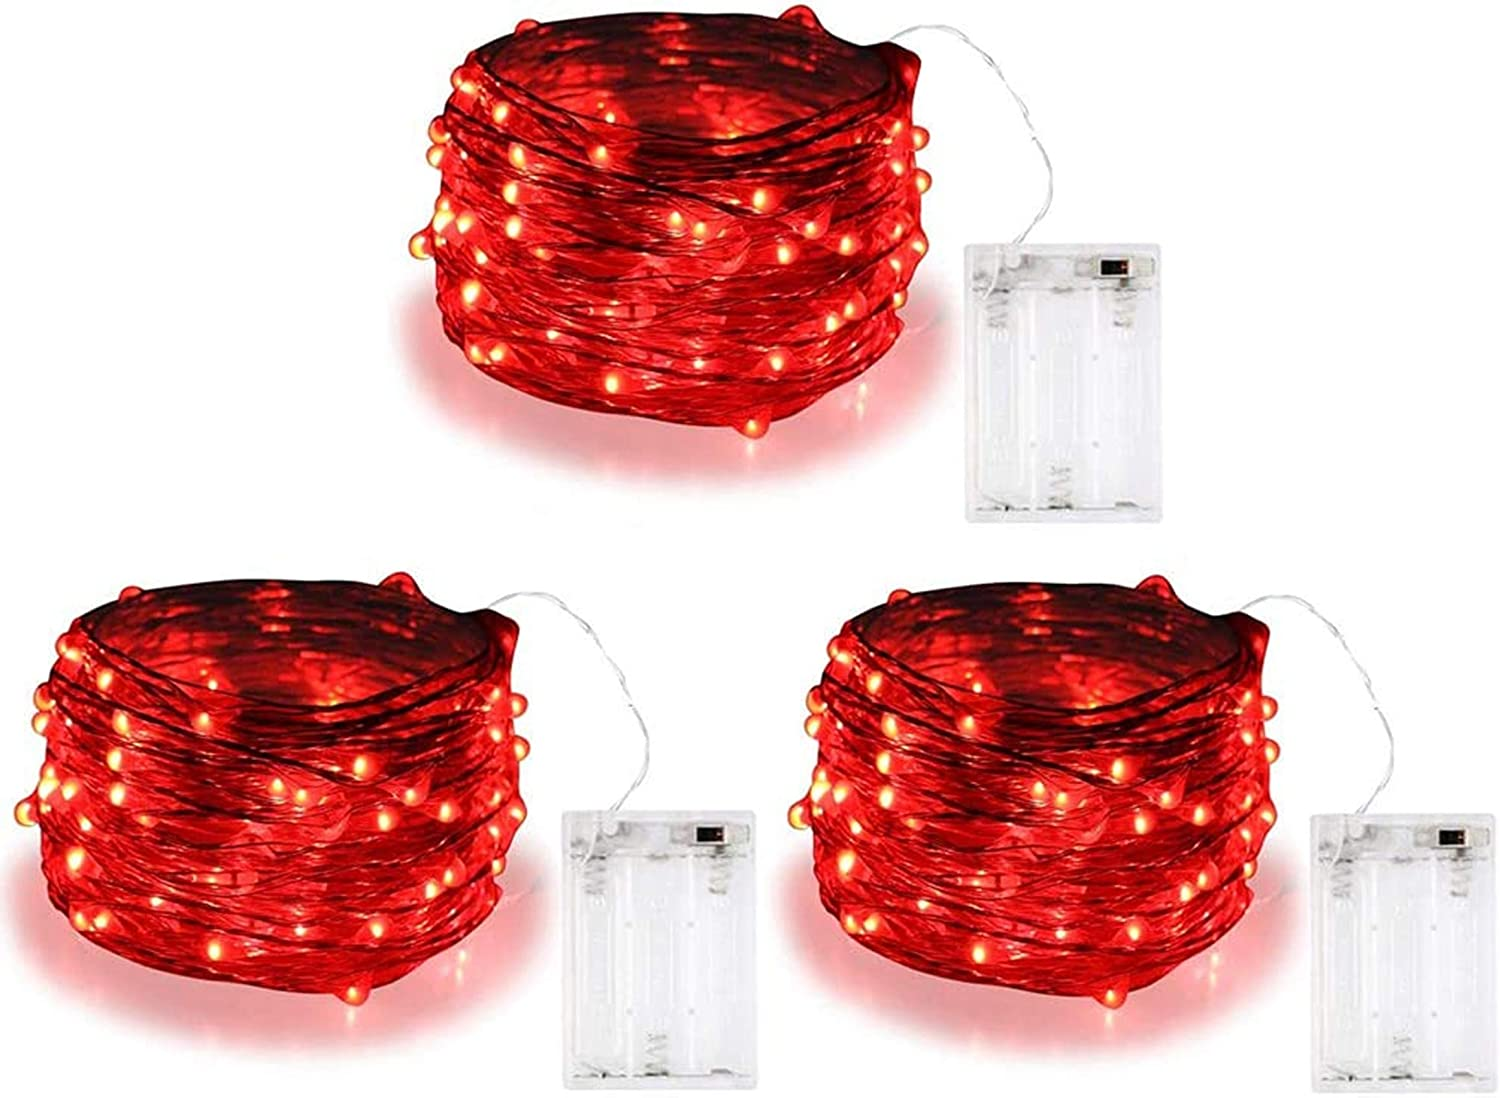 Amazon Com 3 Pack Bolweo 10ft 3m 30 Leds Red Battery Operated Valentine S Day String Light Battery Powered Christmas Lights Indoor Outdoor Home Holiday Wedding Decorations Red Home Improvement